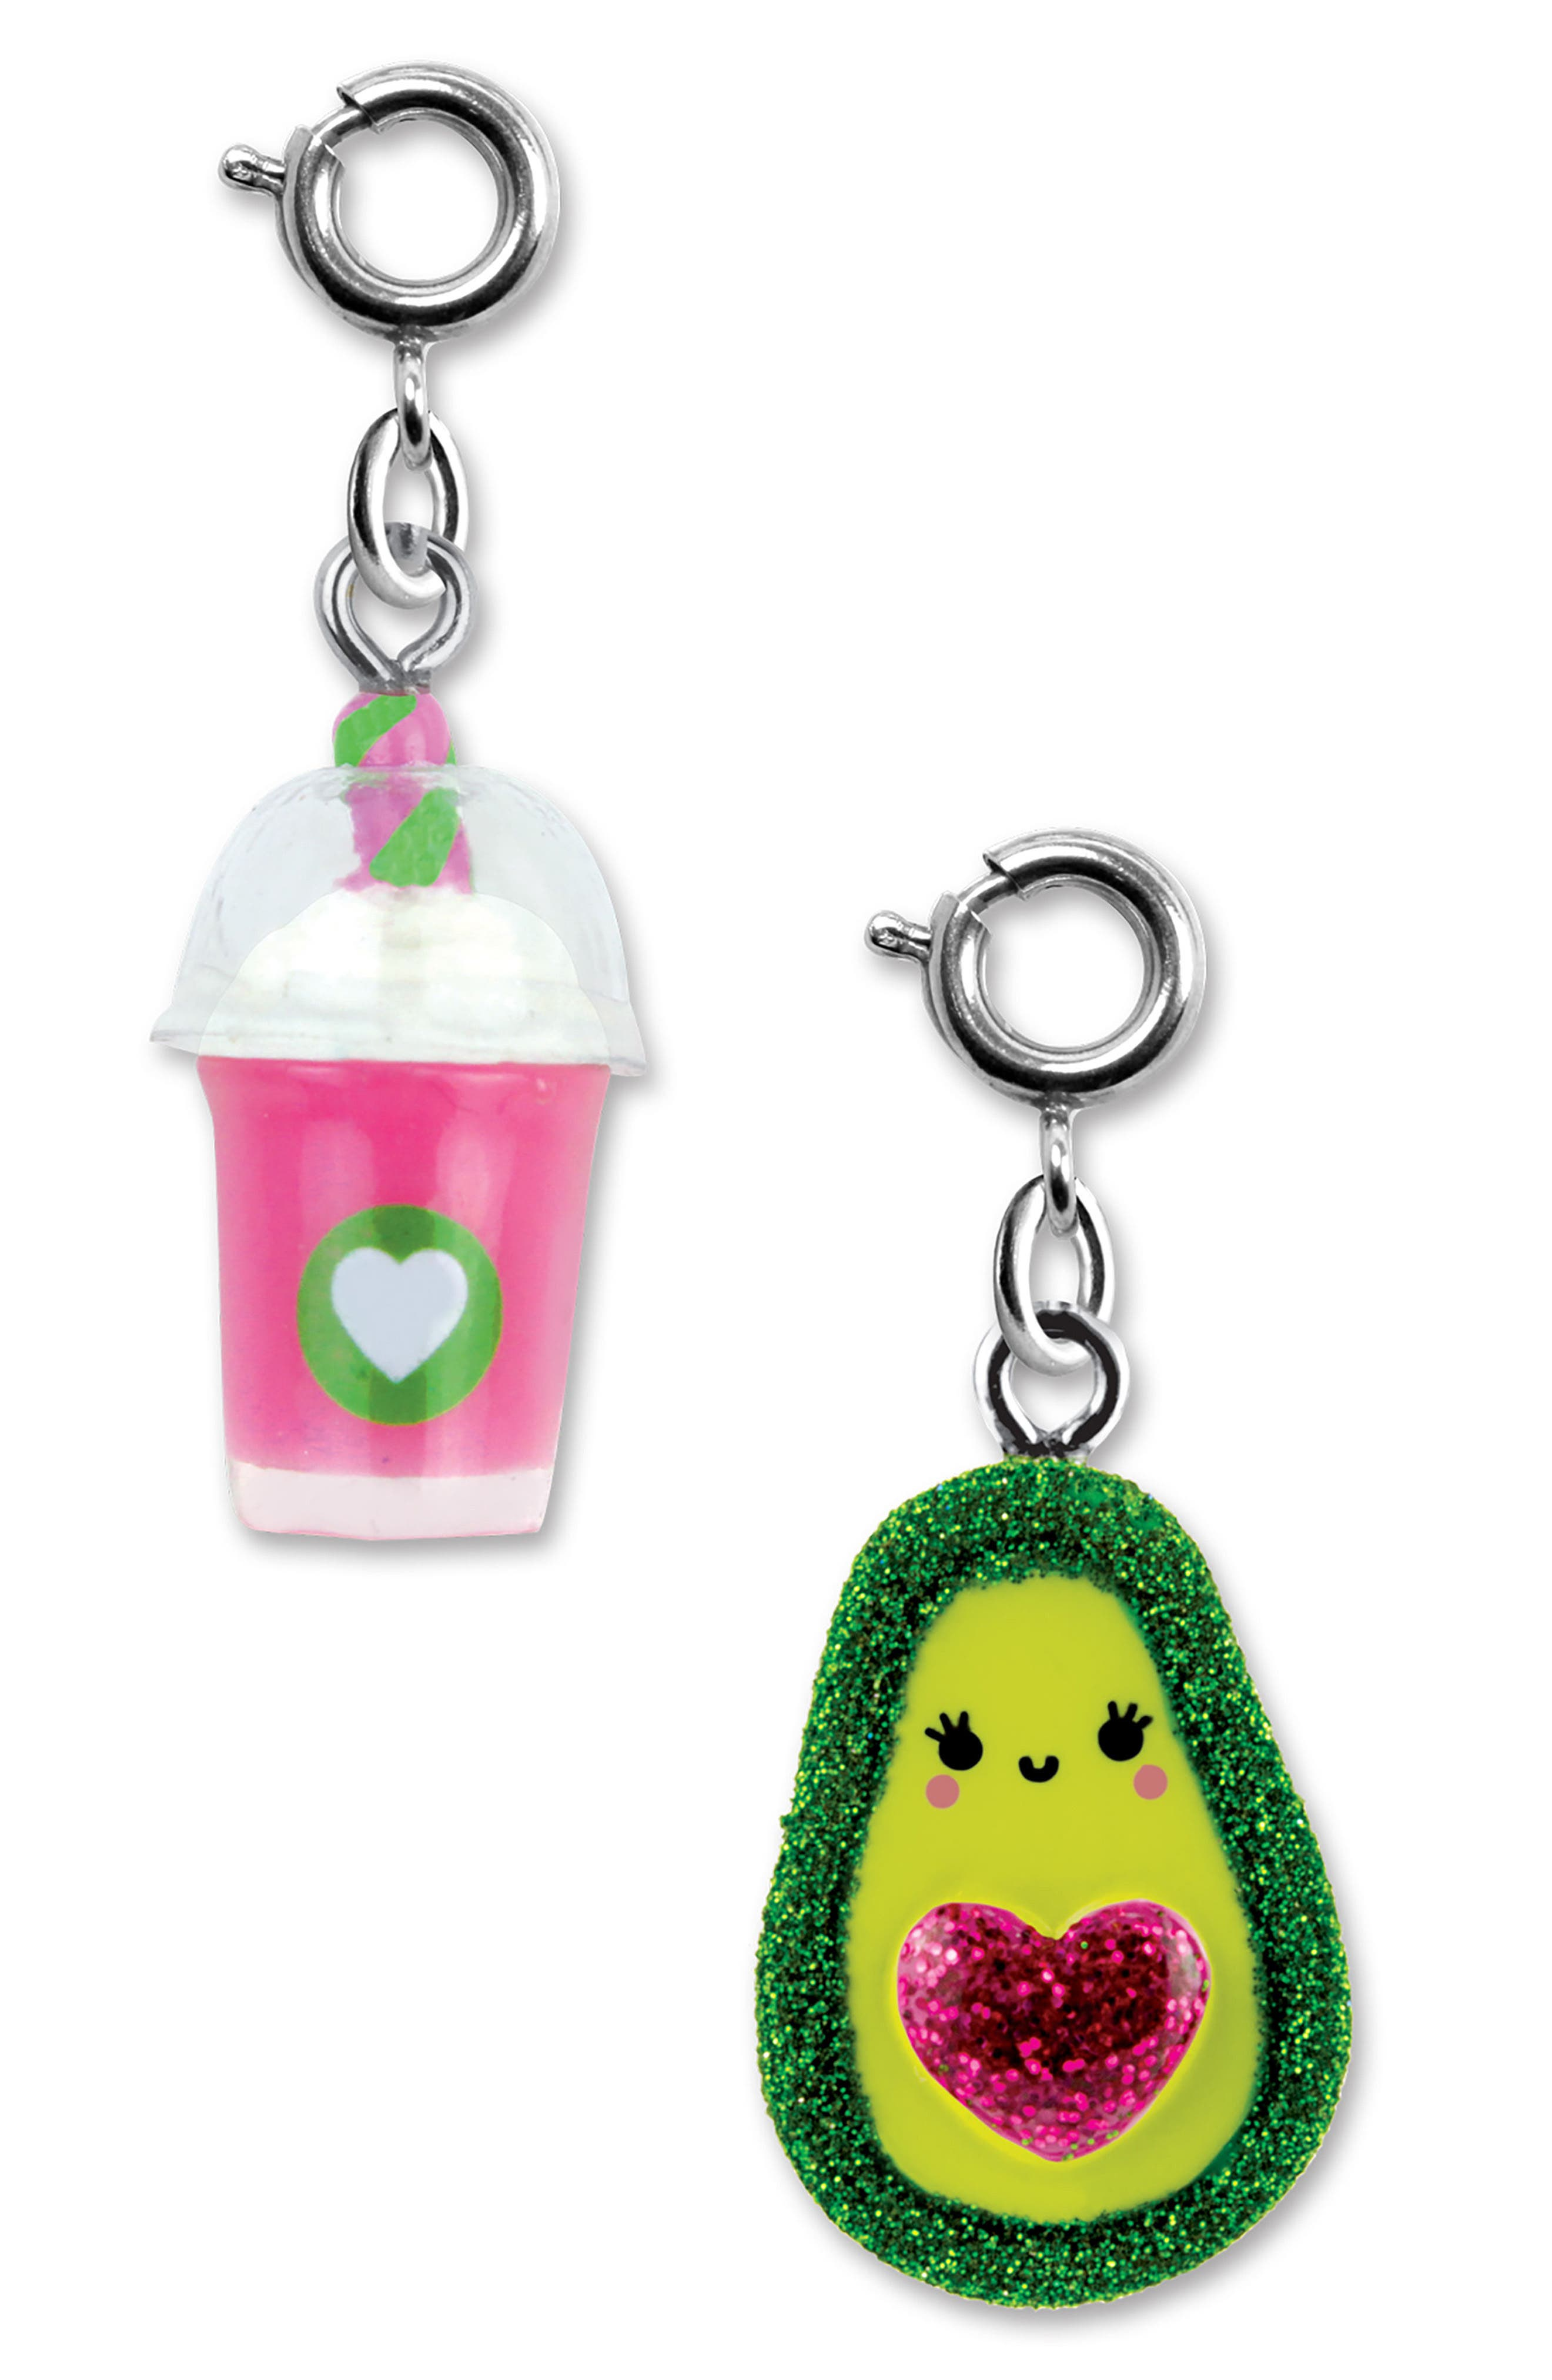 HIgh IntenCity CHARM IT!® 2-Pack Smoothie & Avocado Charms (Girls)